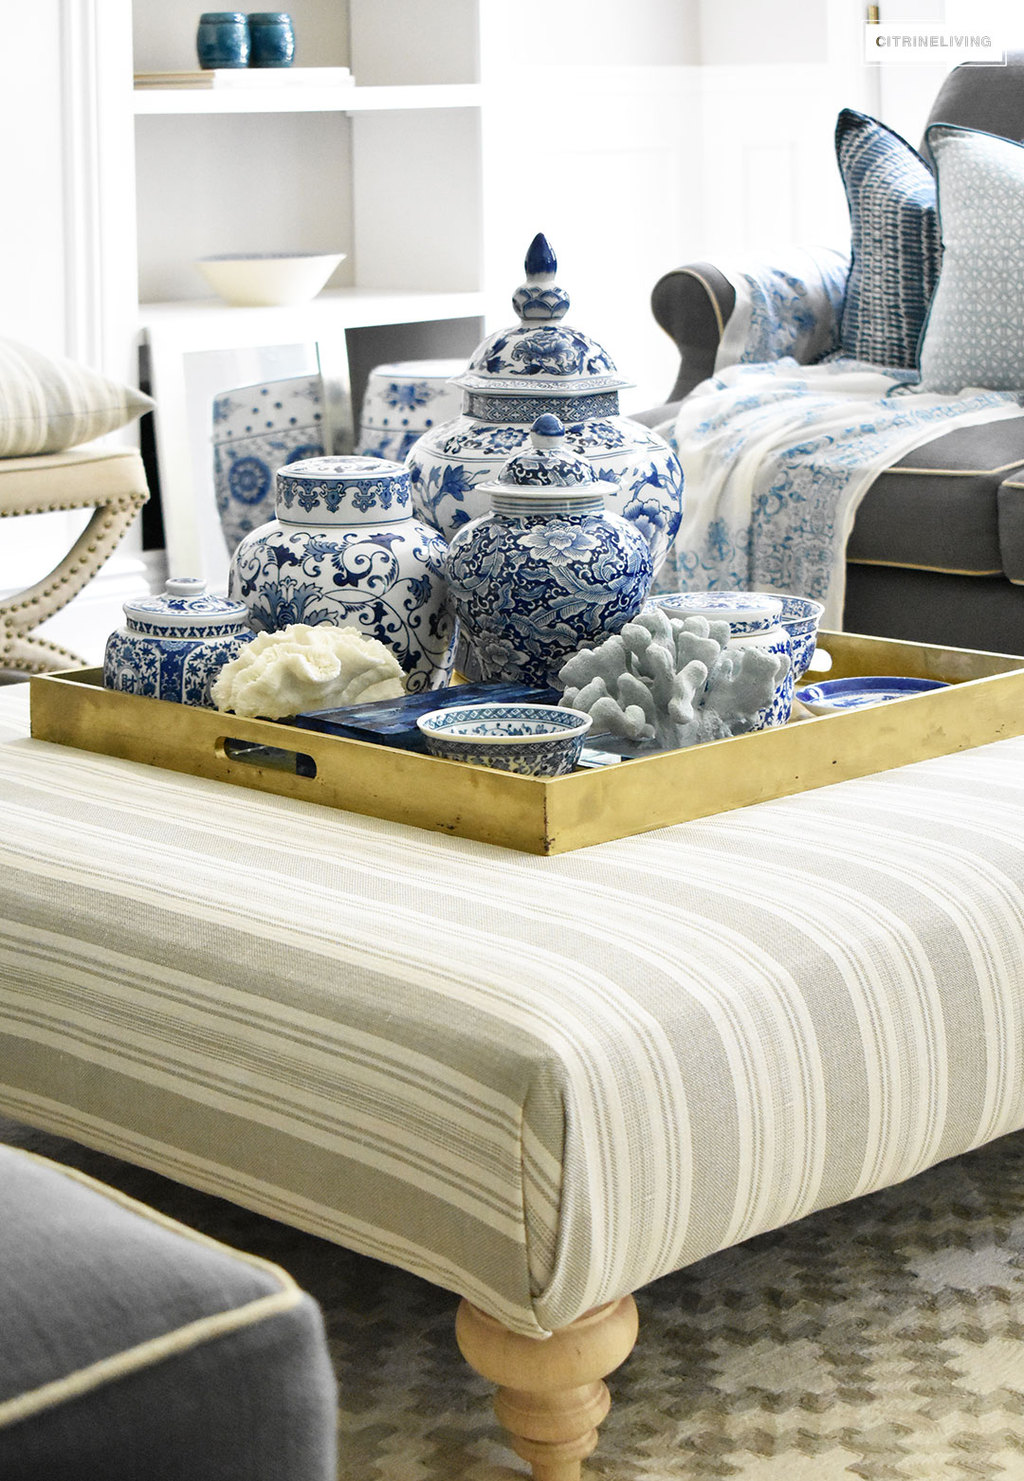 Style Your Coffee Table With A Clustered Grouping Of Blue And White Ginger  Jars And Accessories